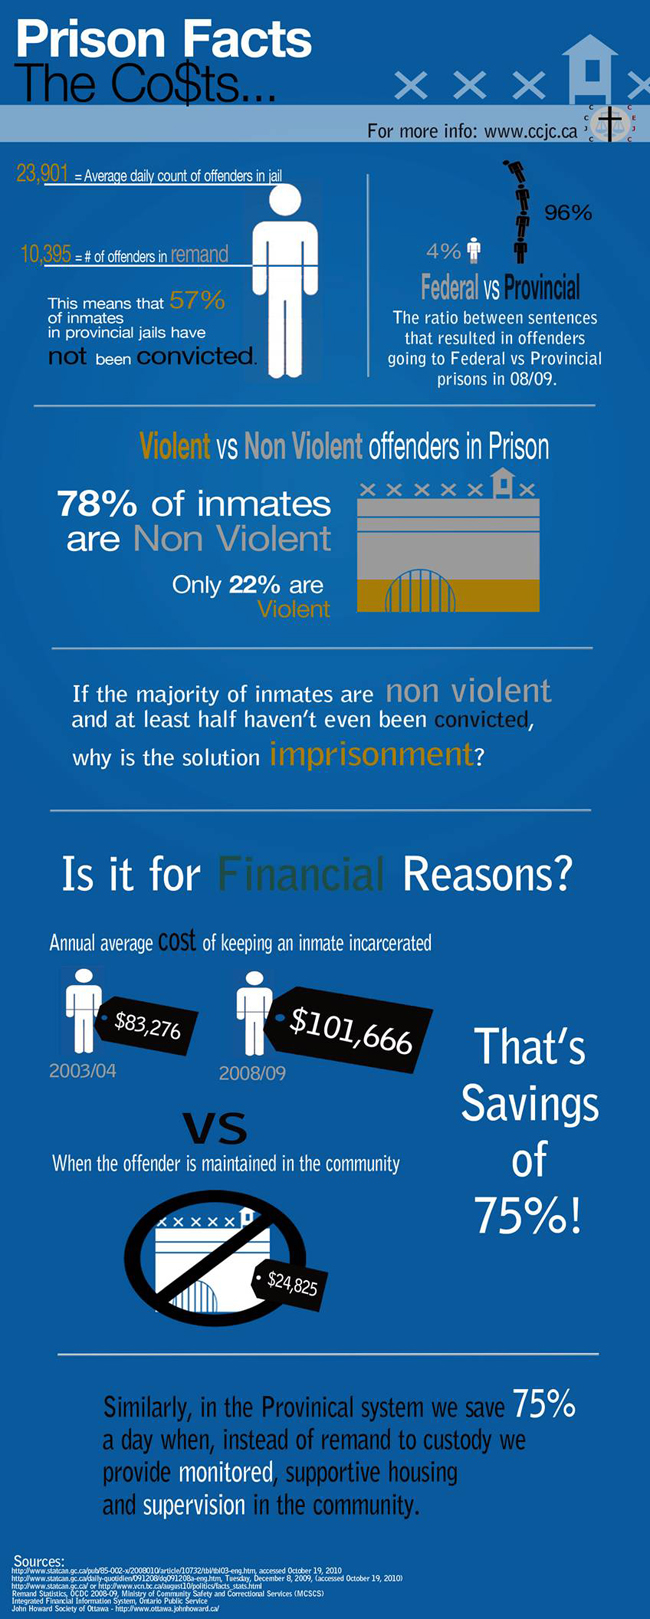 Prison Facts: The Costs